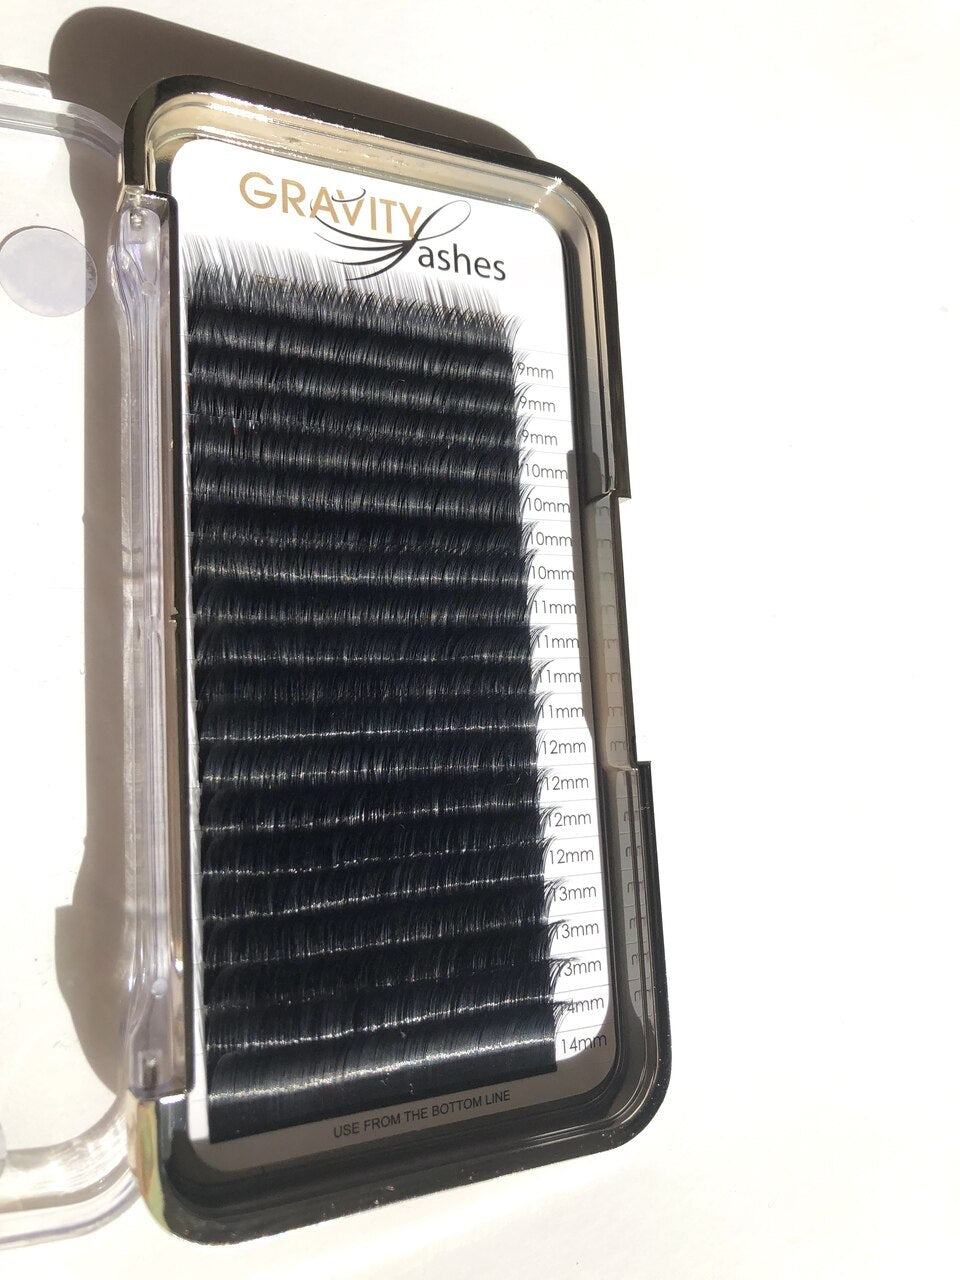 Gravity Lashes Lash C Curl 0.07 Volume I 20 Line 10mm - Professional Salon Brands